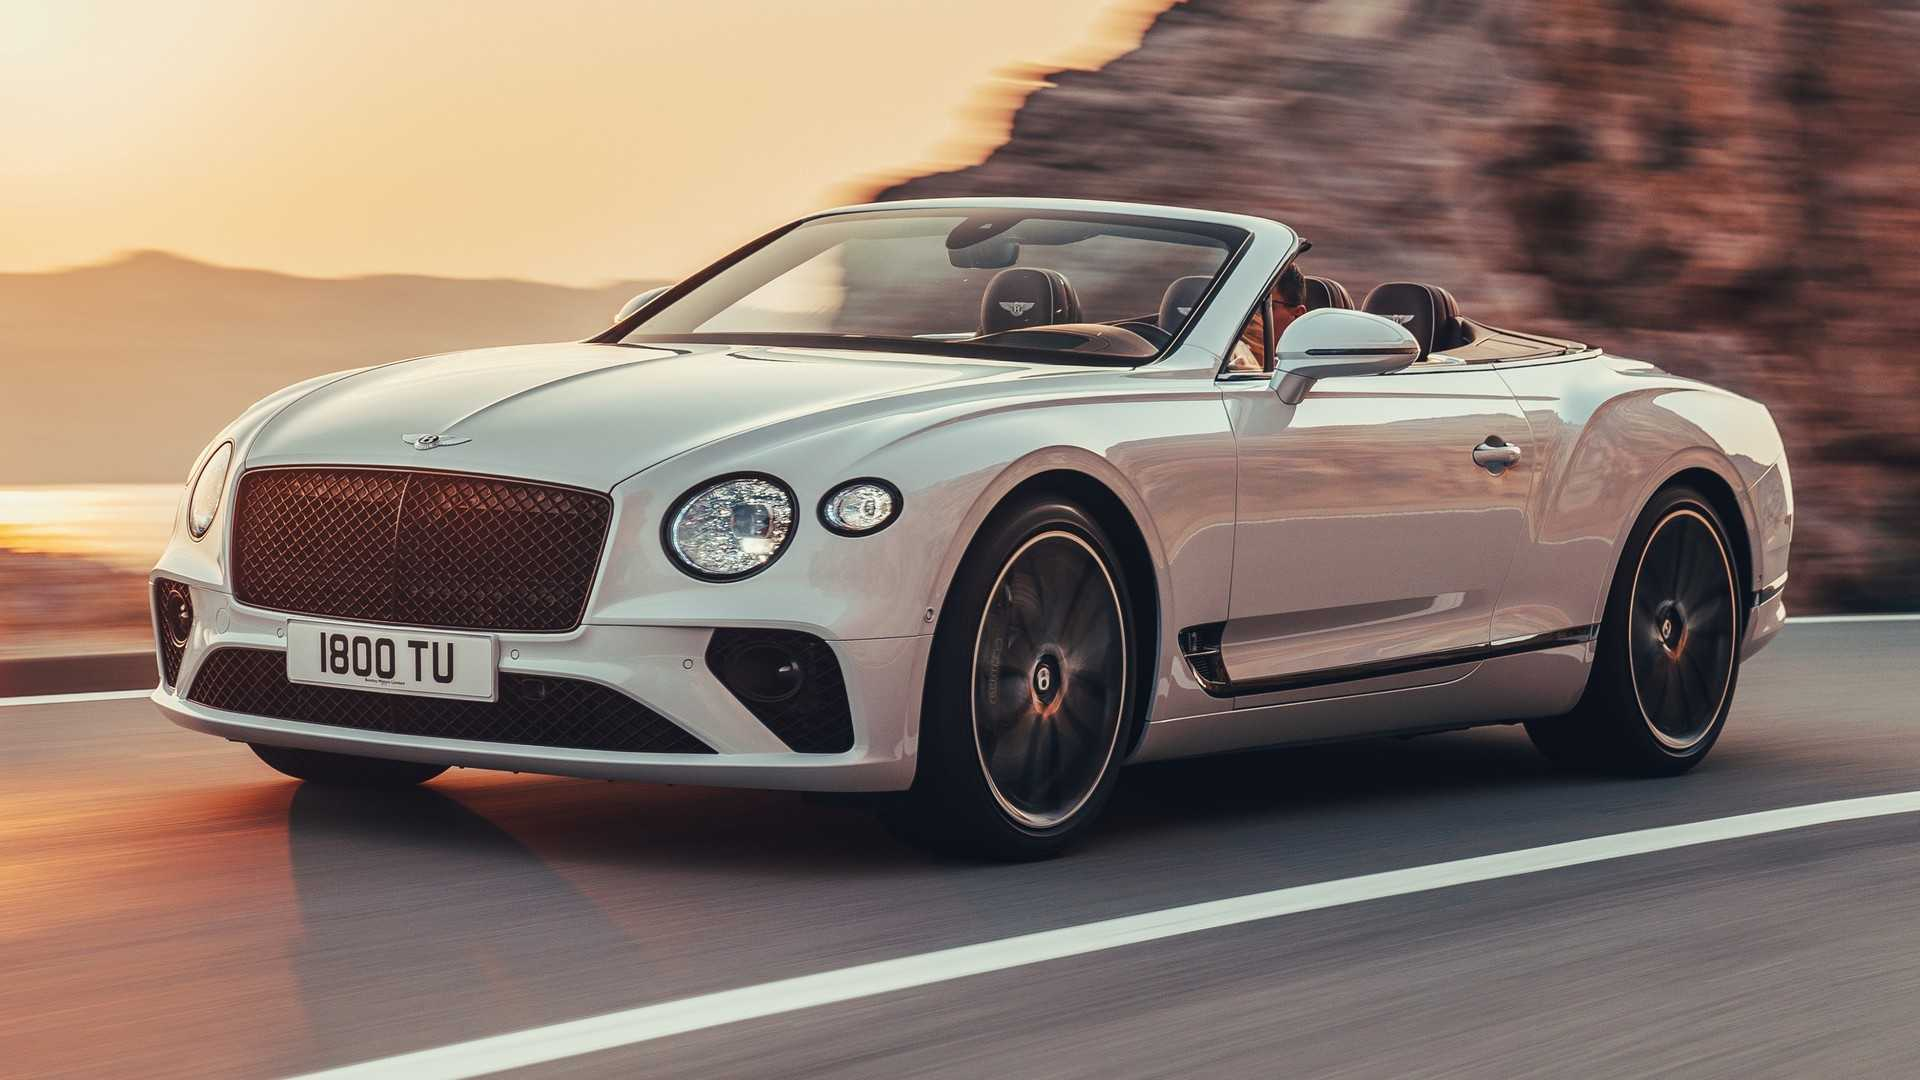 85 All New 2019 Bentley Continental Wallpaper with 2019 Bentley Continental